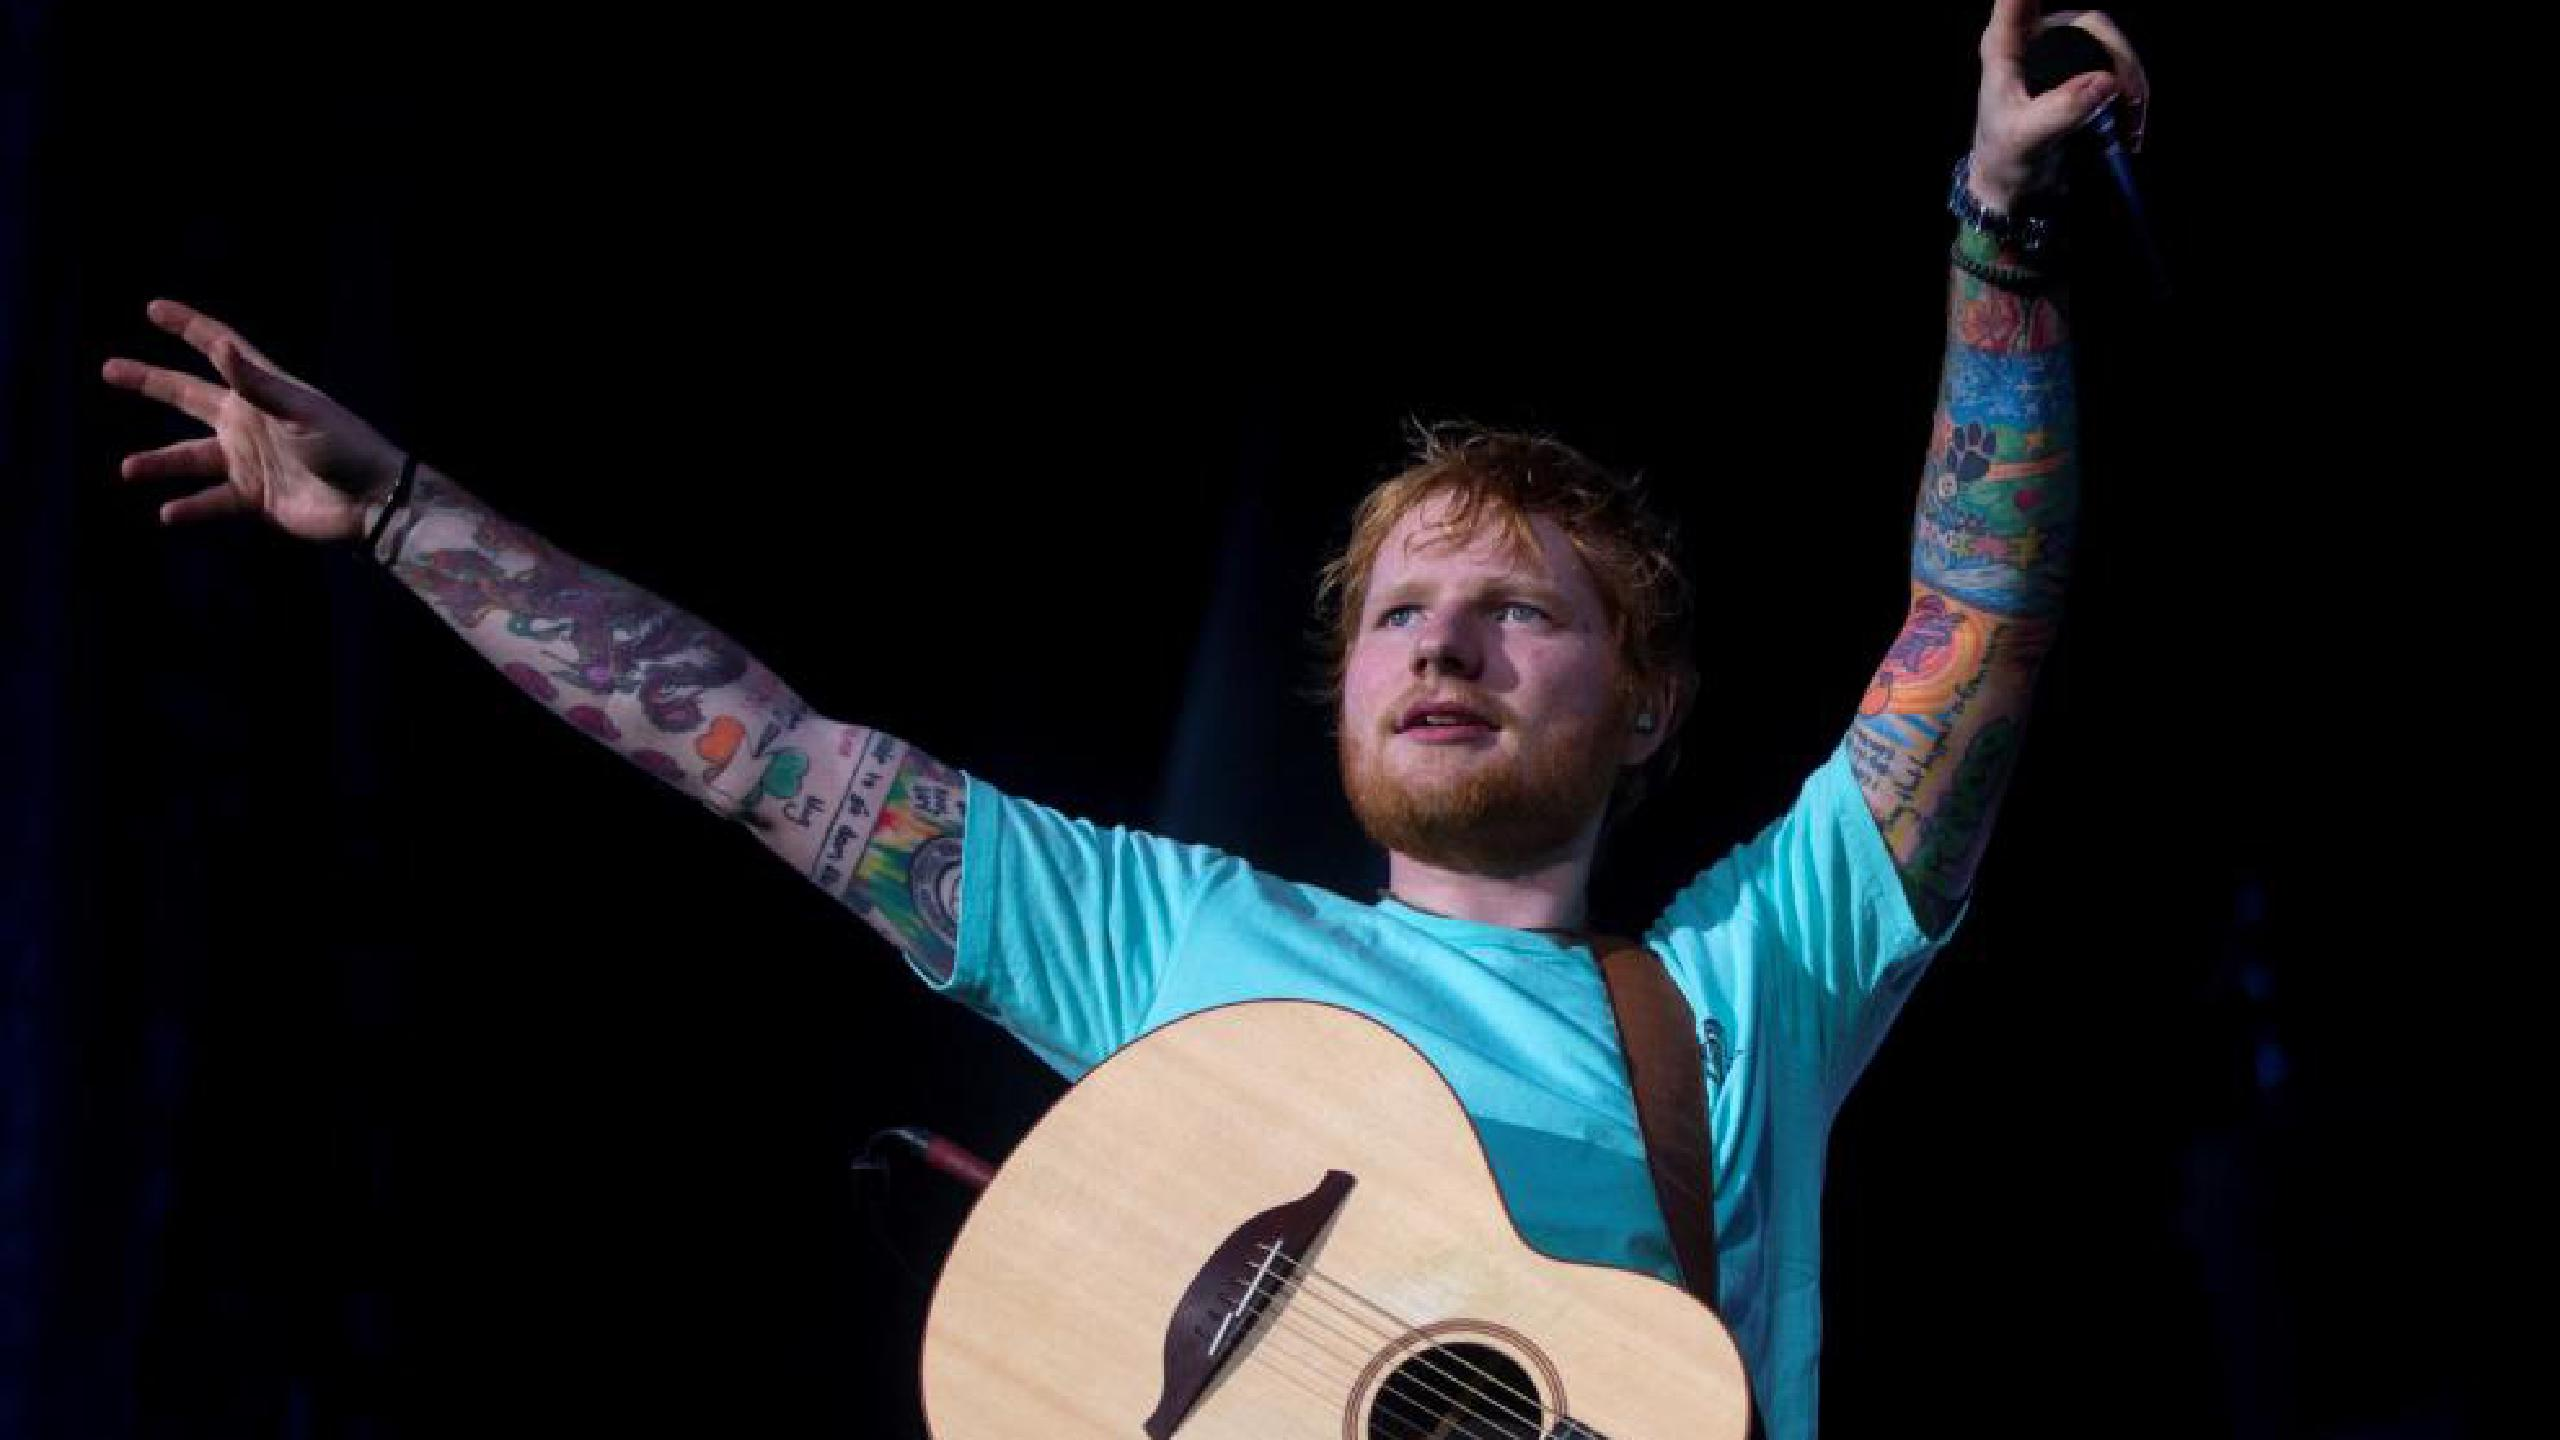 Ed sheeran concert dates usa